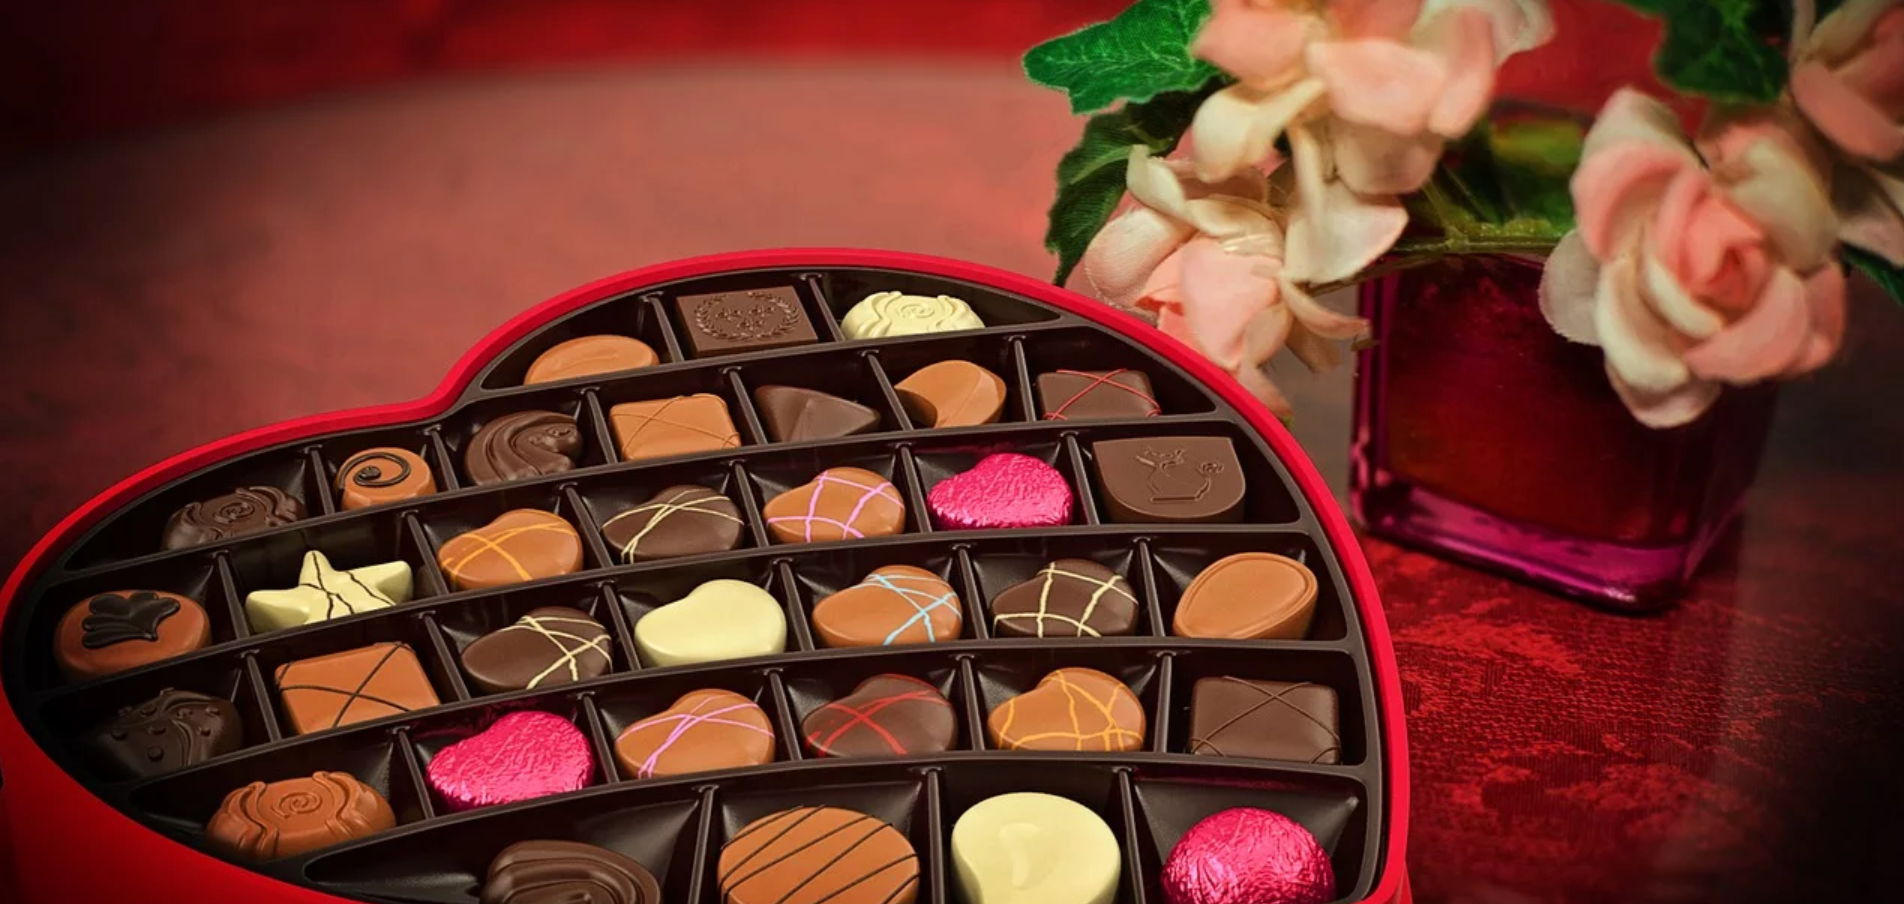 Chocolates come in many varities-what's your favorite?